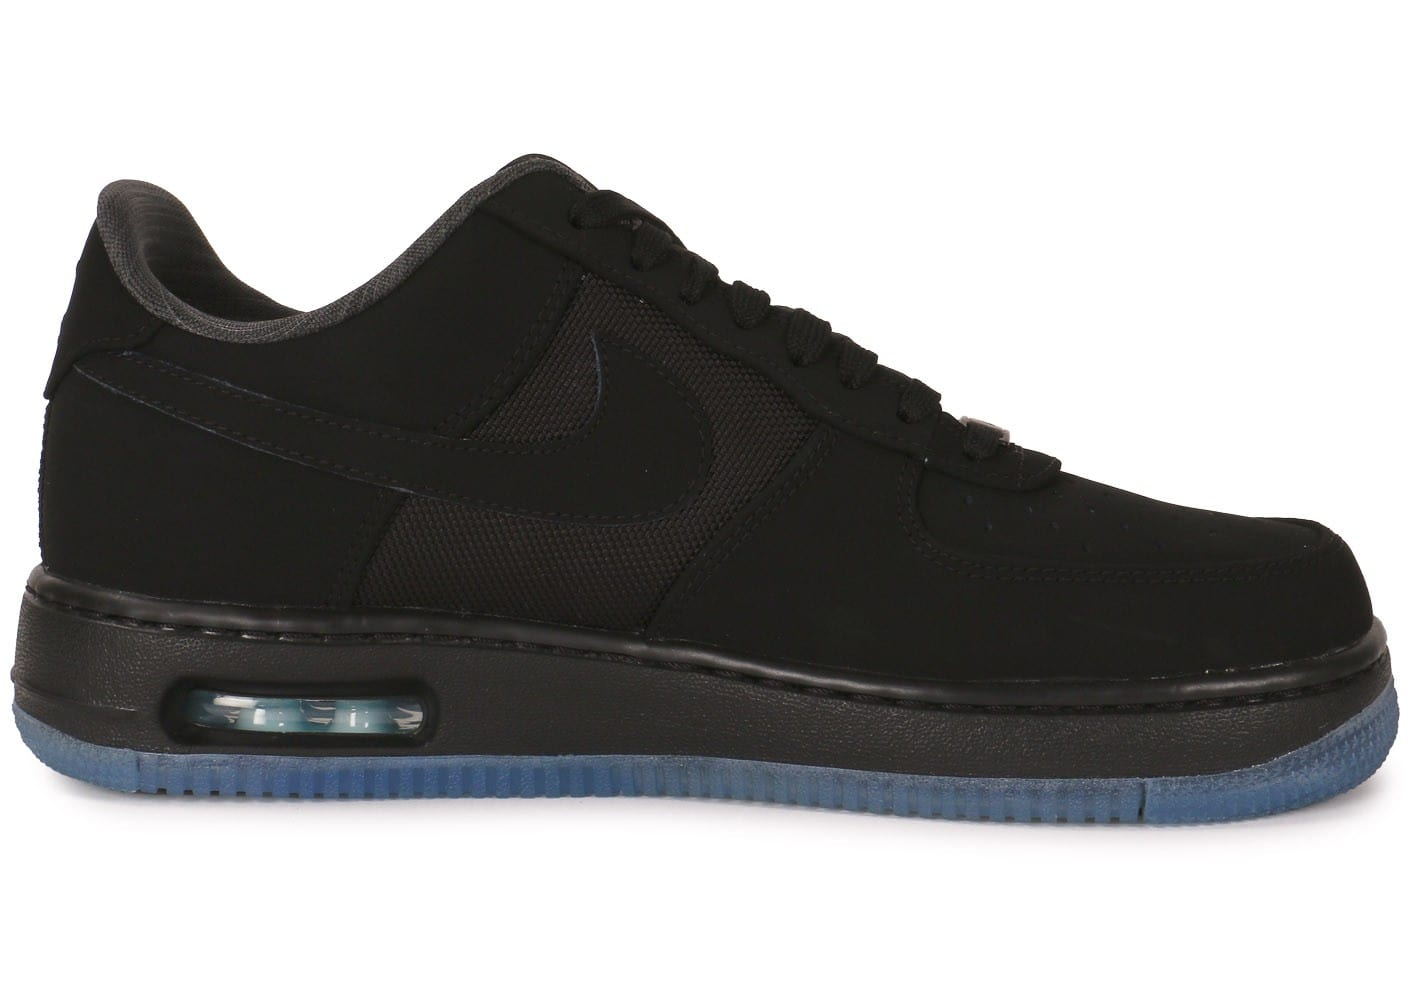 new arrival 73f6b 8f209 ... chaussures nike air force 1 elite noire vue interieure